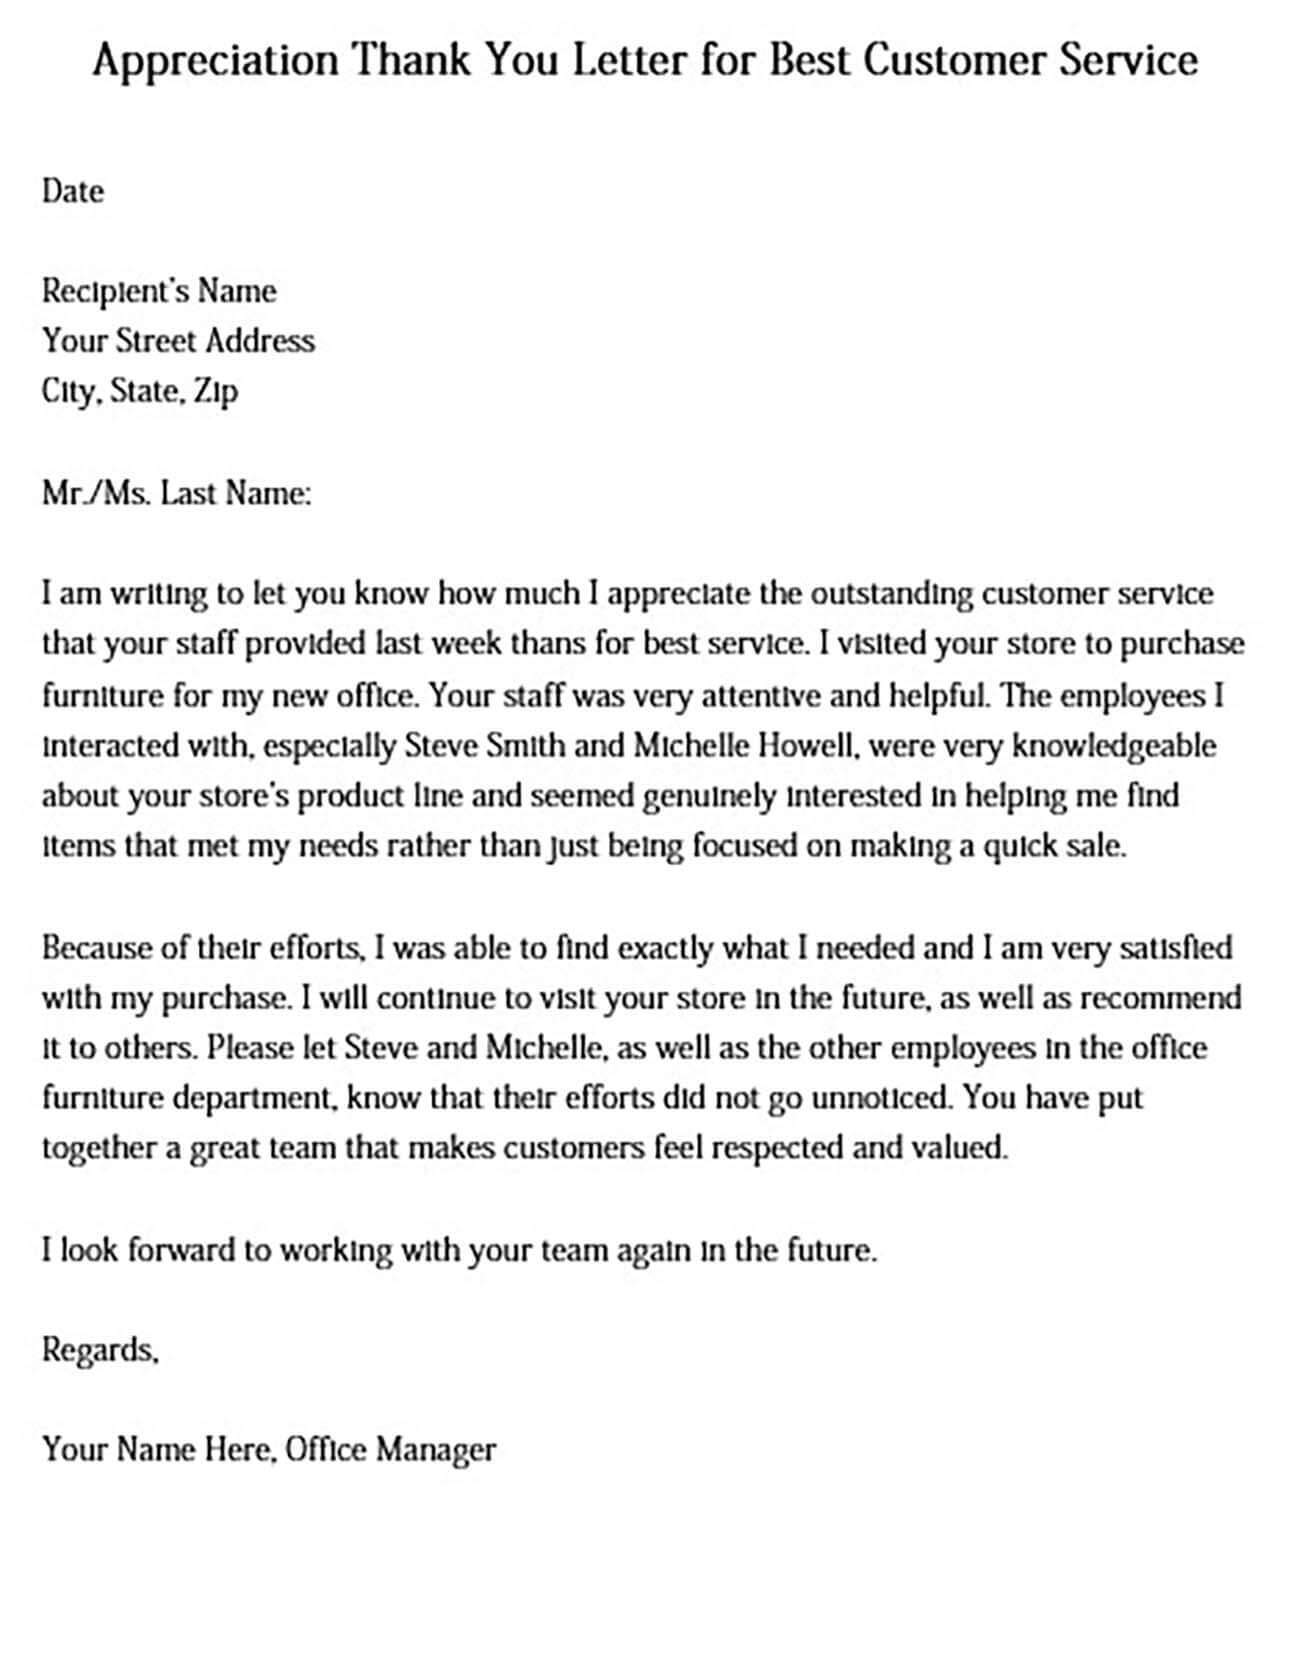 Customer Service Appreciation Letter from moussyusa.com